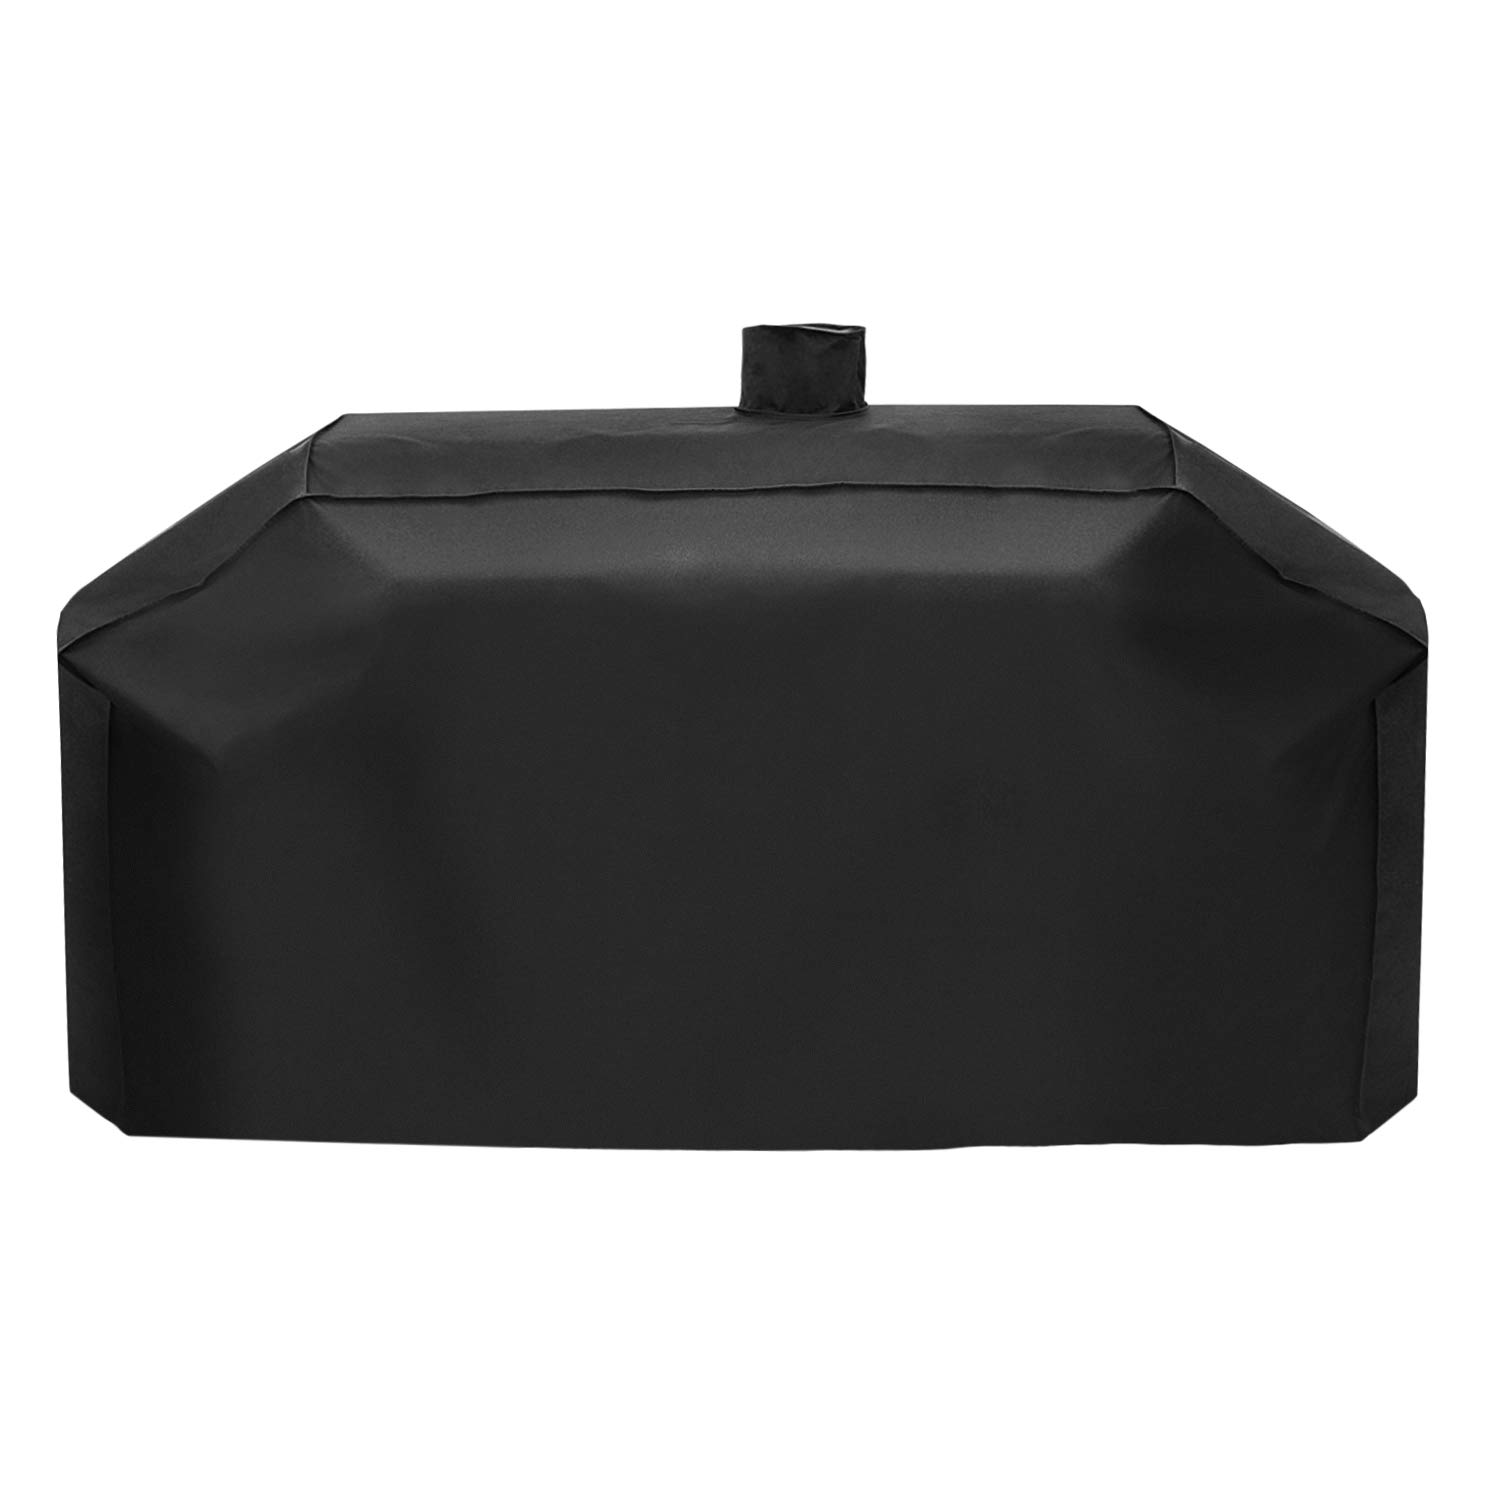 SunPatio Outdoor Heavy Duty Waterproof Grill Cover for Smoke Hollow Gas/Charcoal Grill and More, UV Resistant Barbecue Cover 79 Inch, All Weather Protection, Black by SunPatio